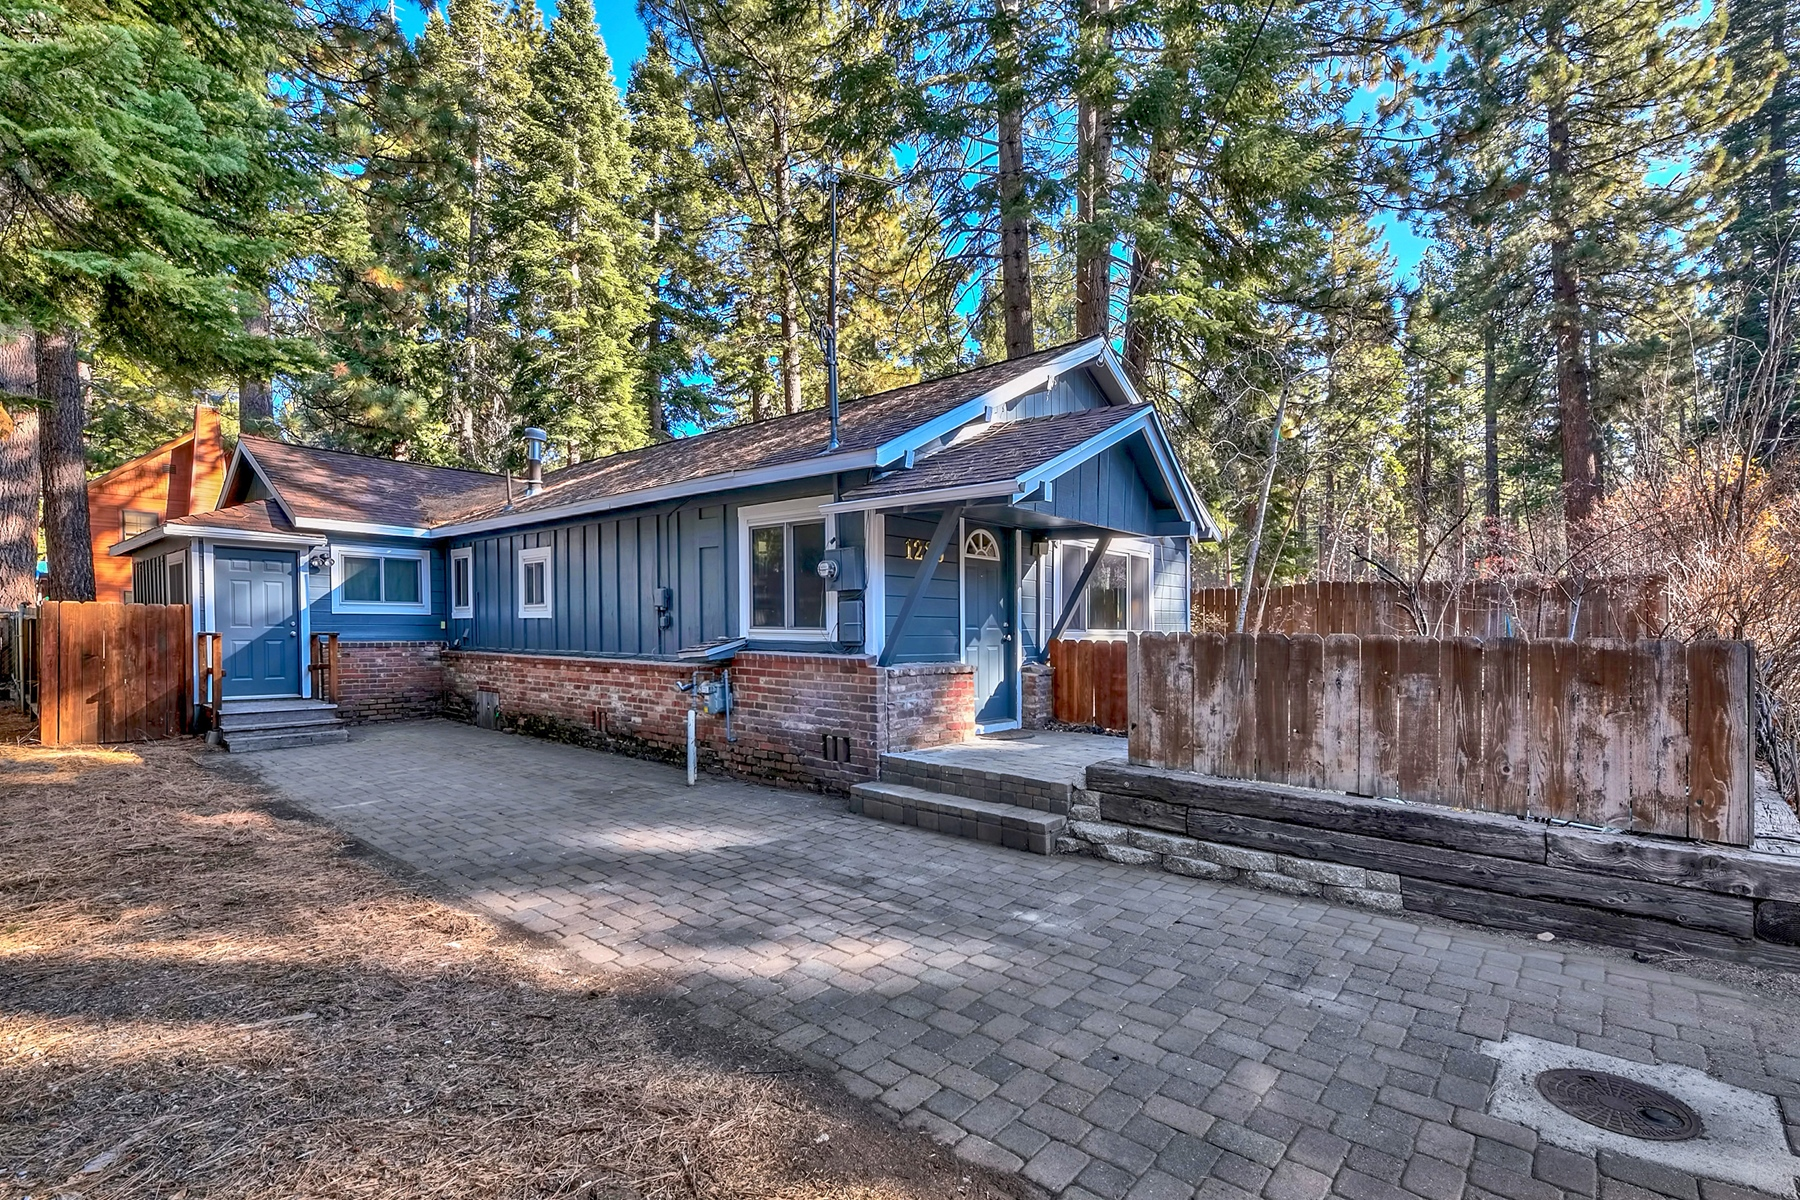 Property for Active at 1285 Margaret Ave, South Lake Tahoe, Ca 96150 1285 Margaret Avenue South Lake Tahoe, California 96150 United States